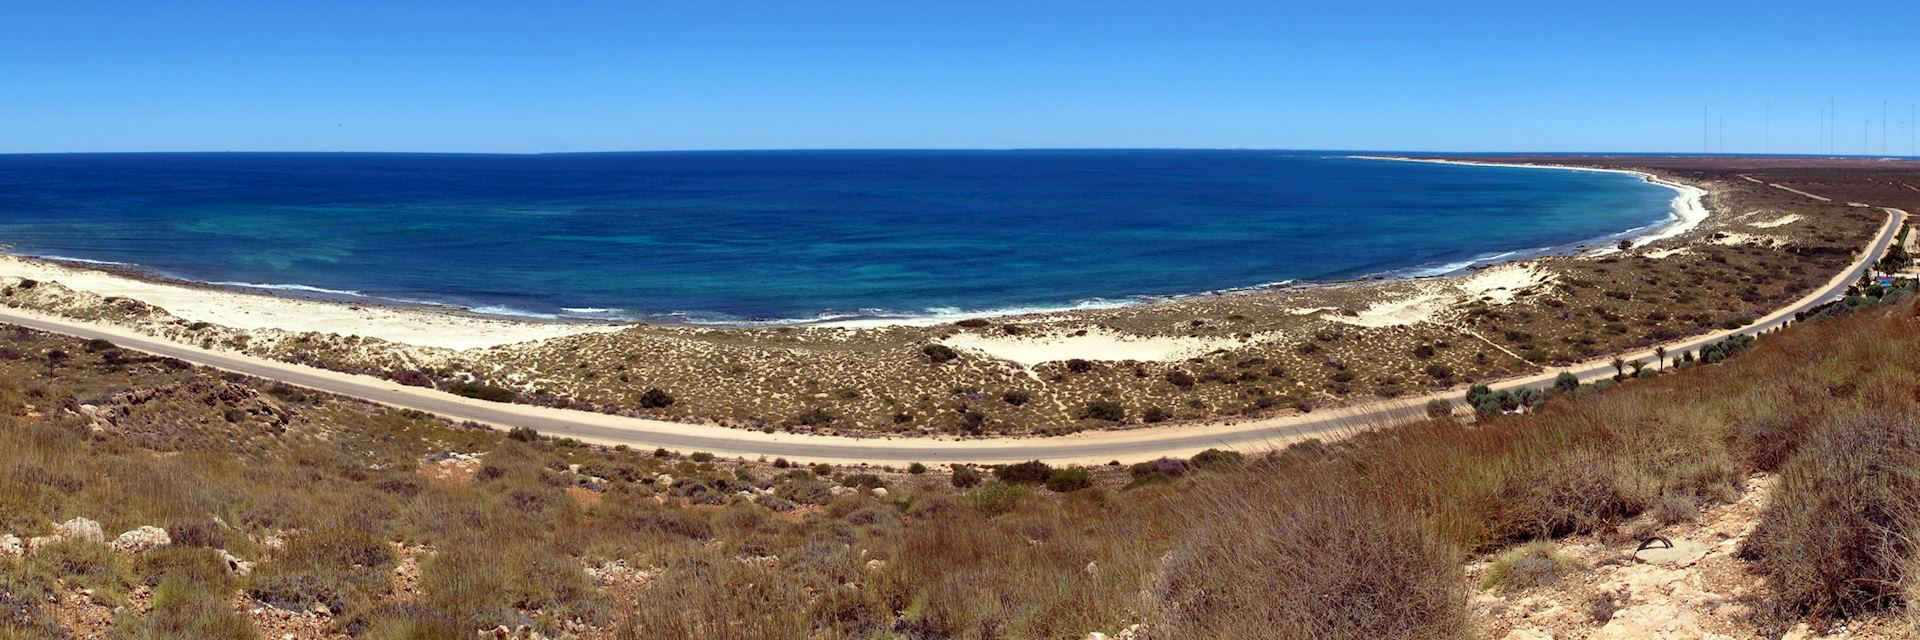 Ningaloo coastal road